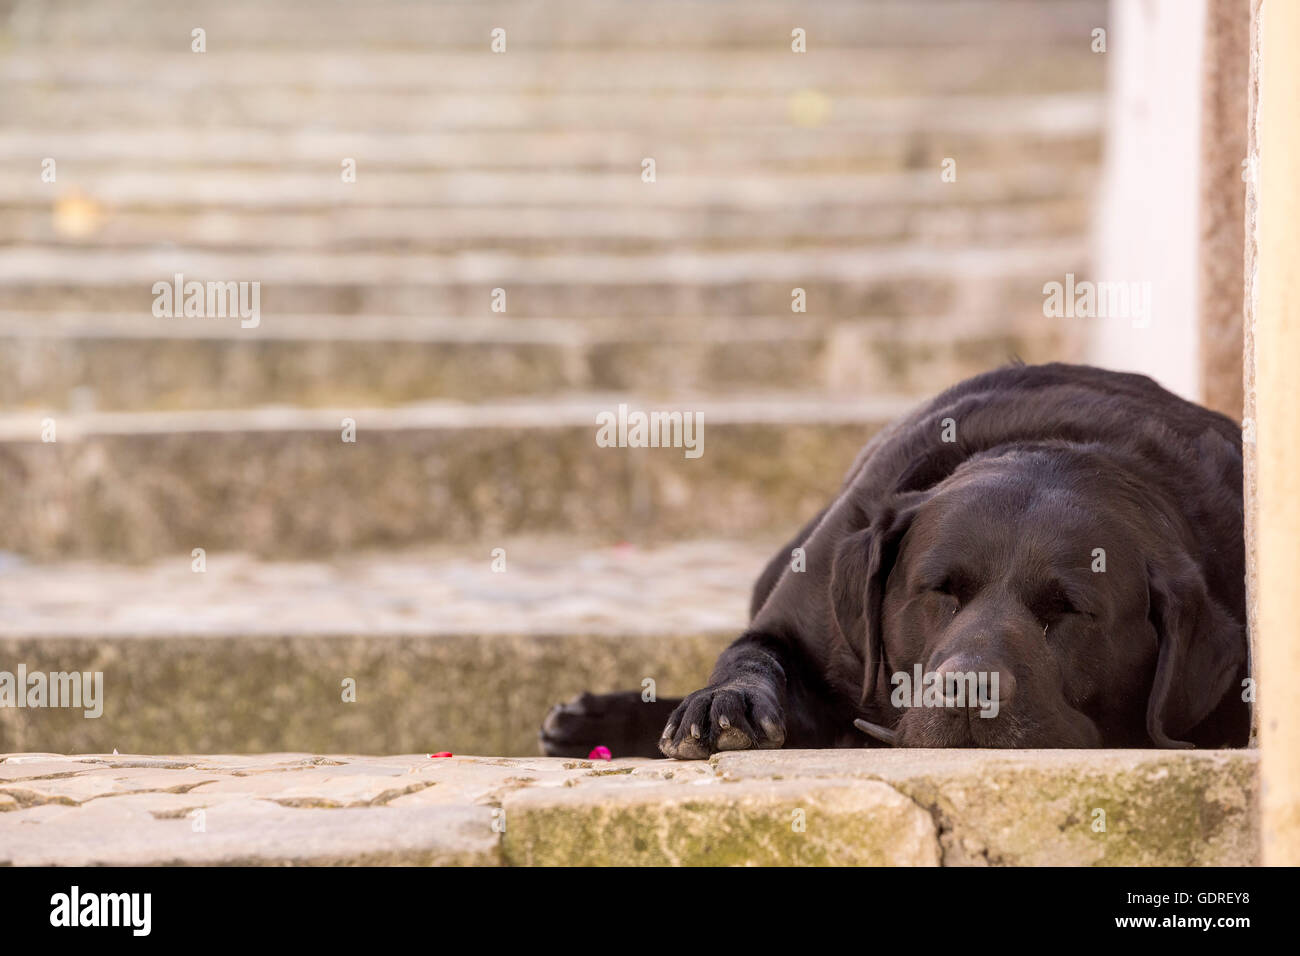 sleeping dog in the streets of Sintra, on the steps of the streets, Lisbon, Lisbon, Portugal, Europe, Travel, Travel - Stock Image